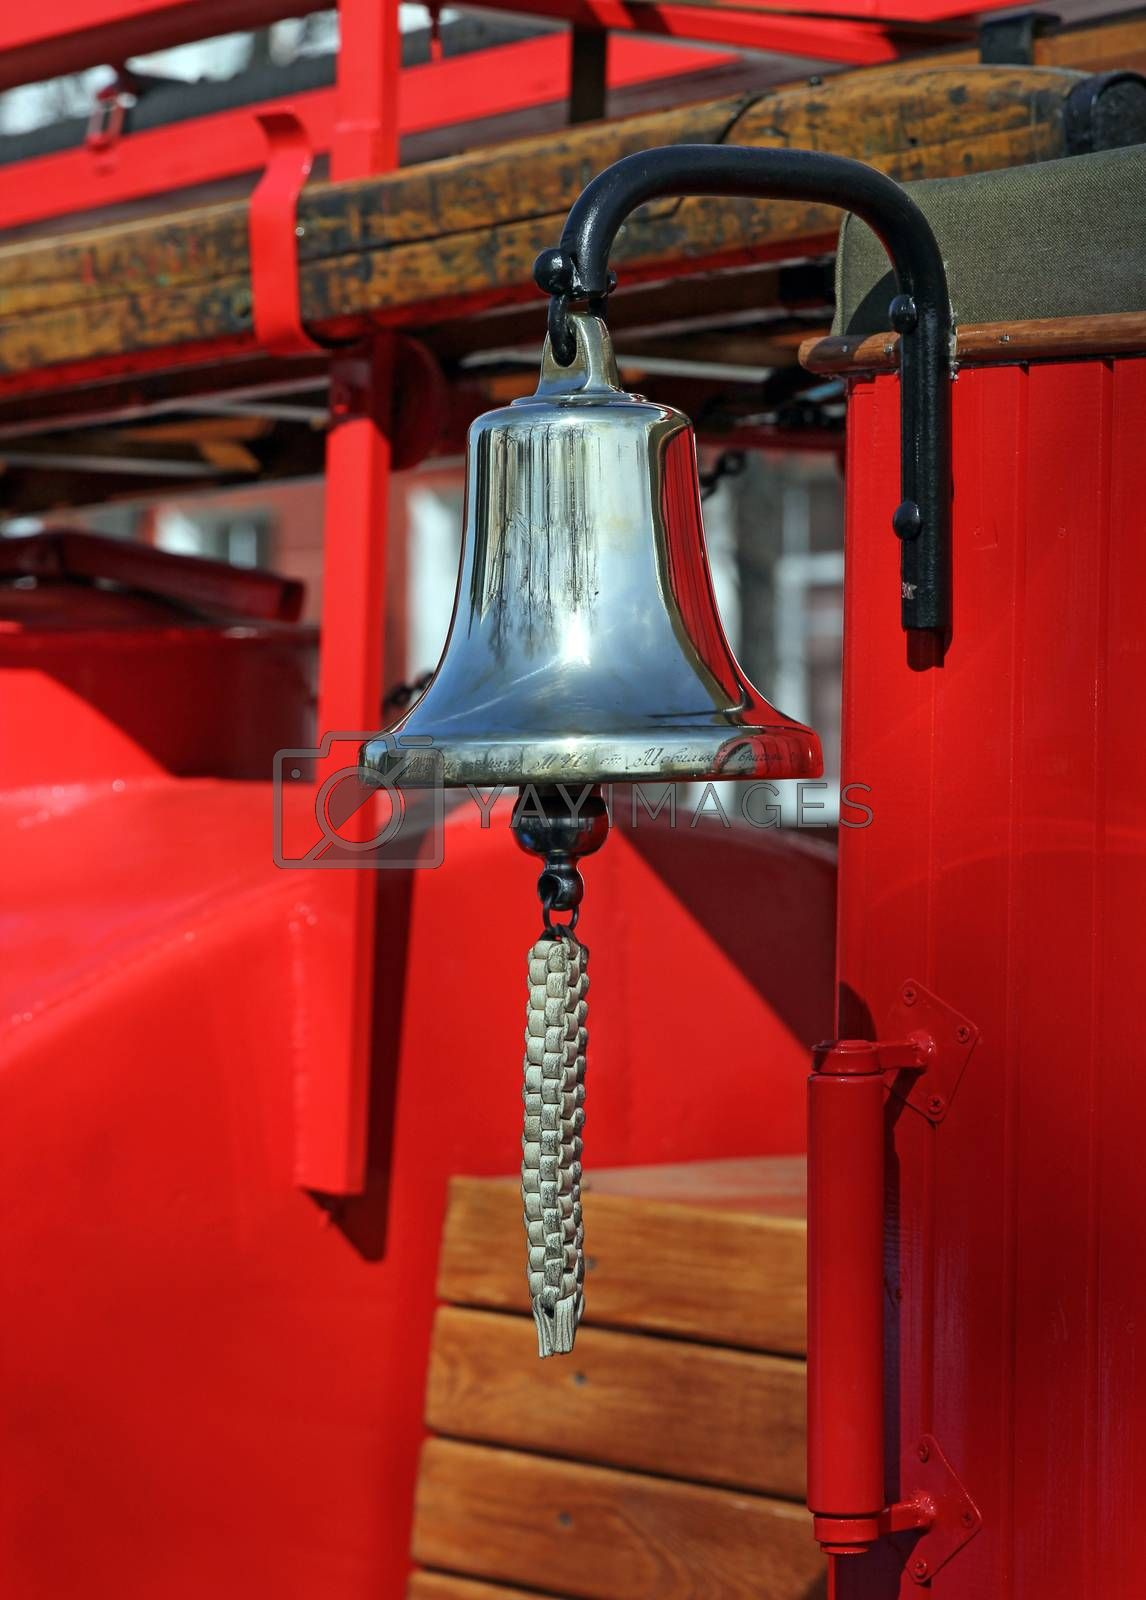 Metal alarm bell on red fire truck.